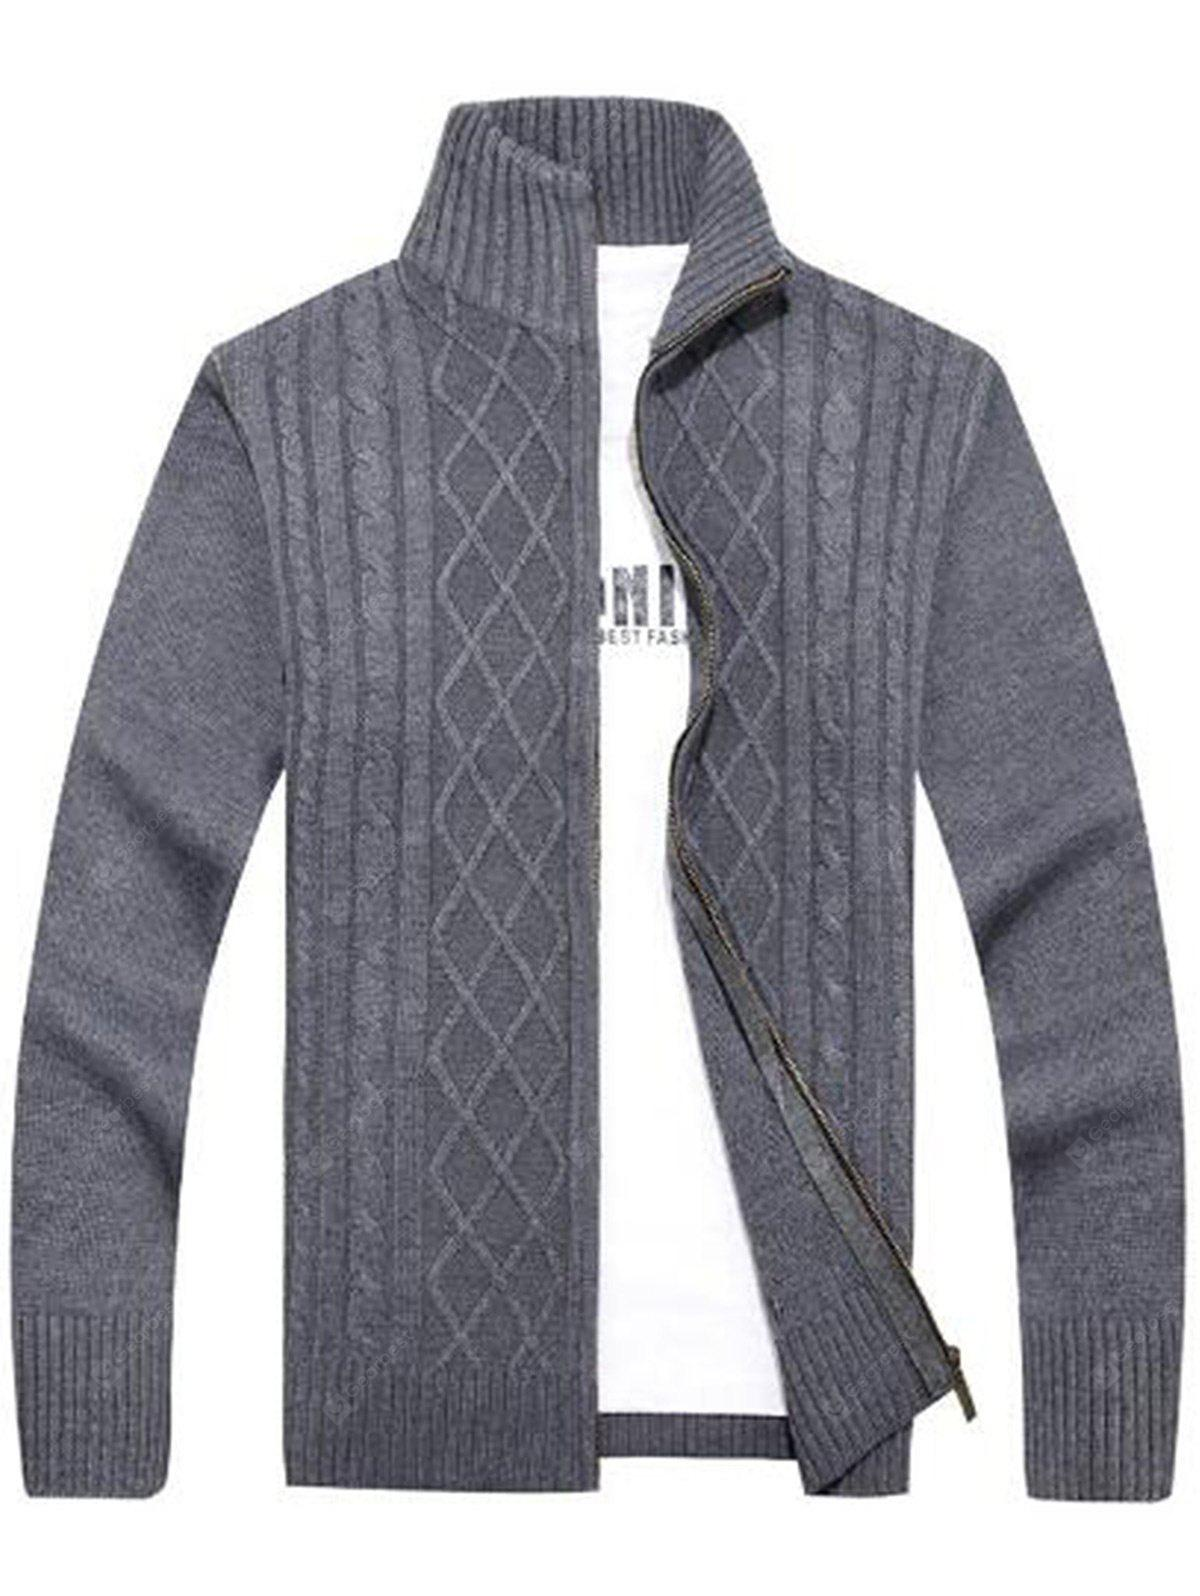 Cable Knit Zipper Sweater Cardigan